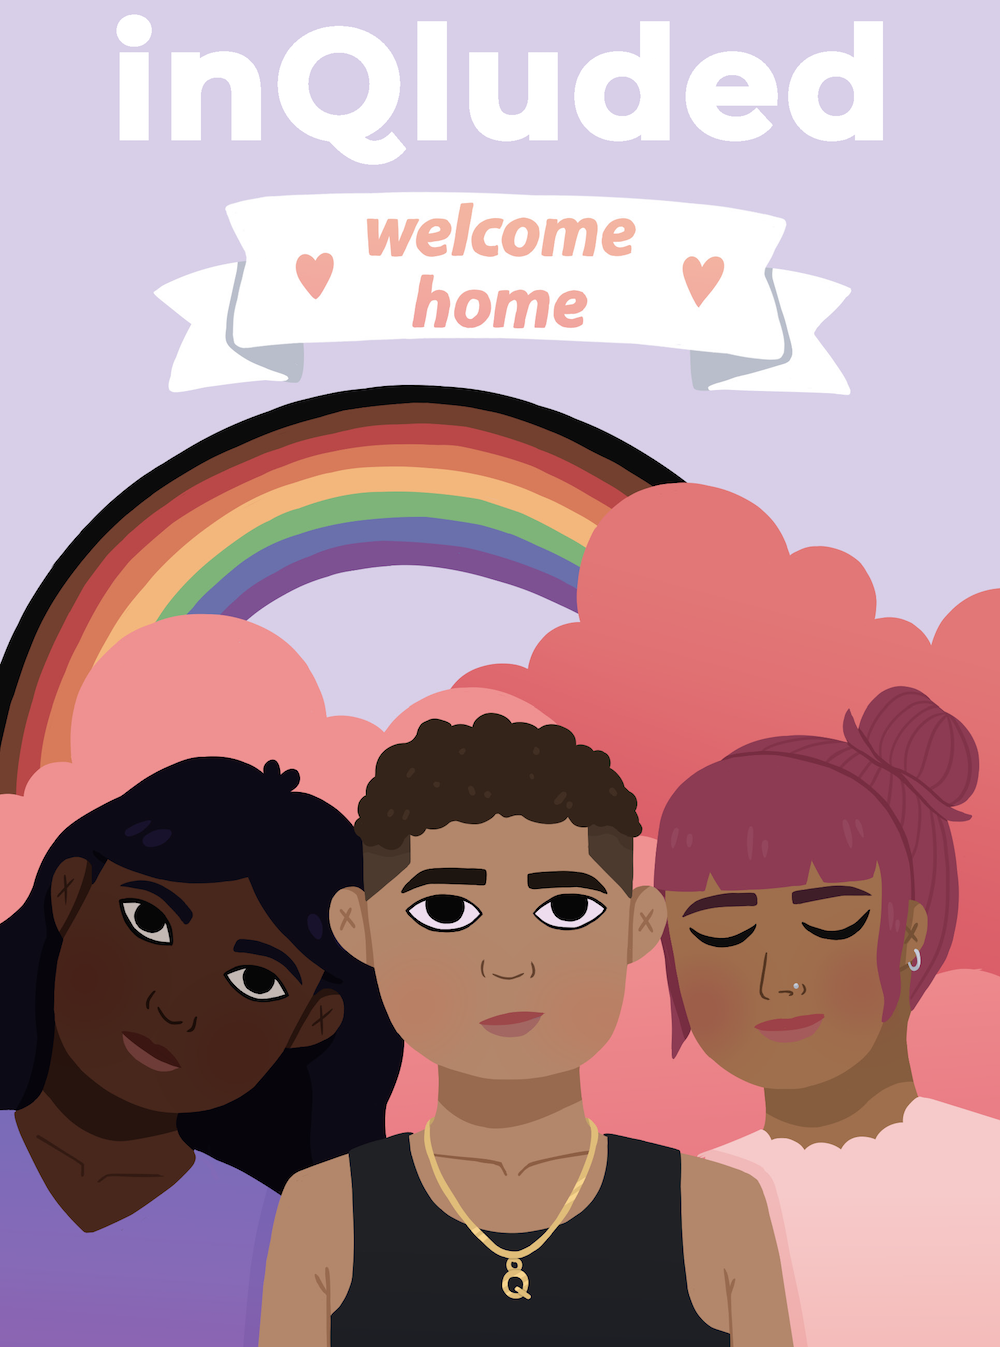 Meet inQluded: A Digital Magazine and Community Space for Queer Kids of Color